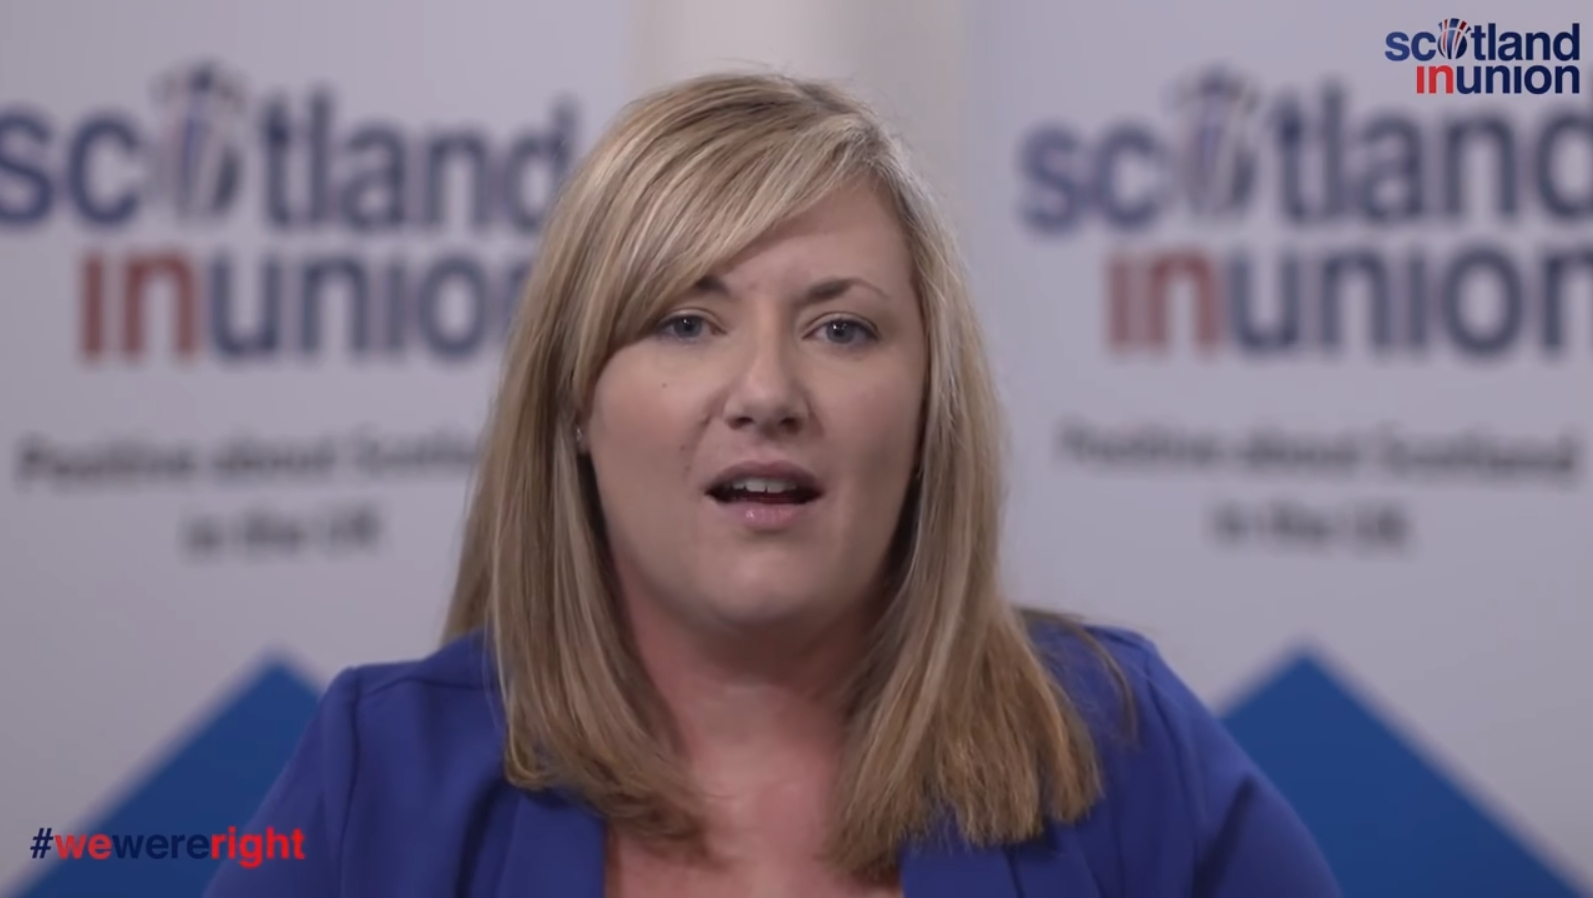 Pamela Nash, chief executive of Scotland in Union